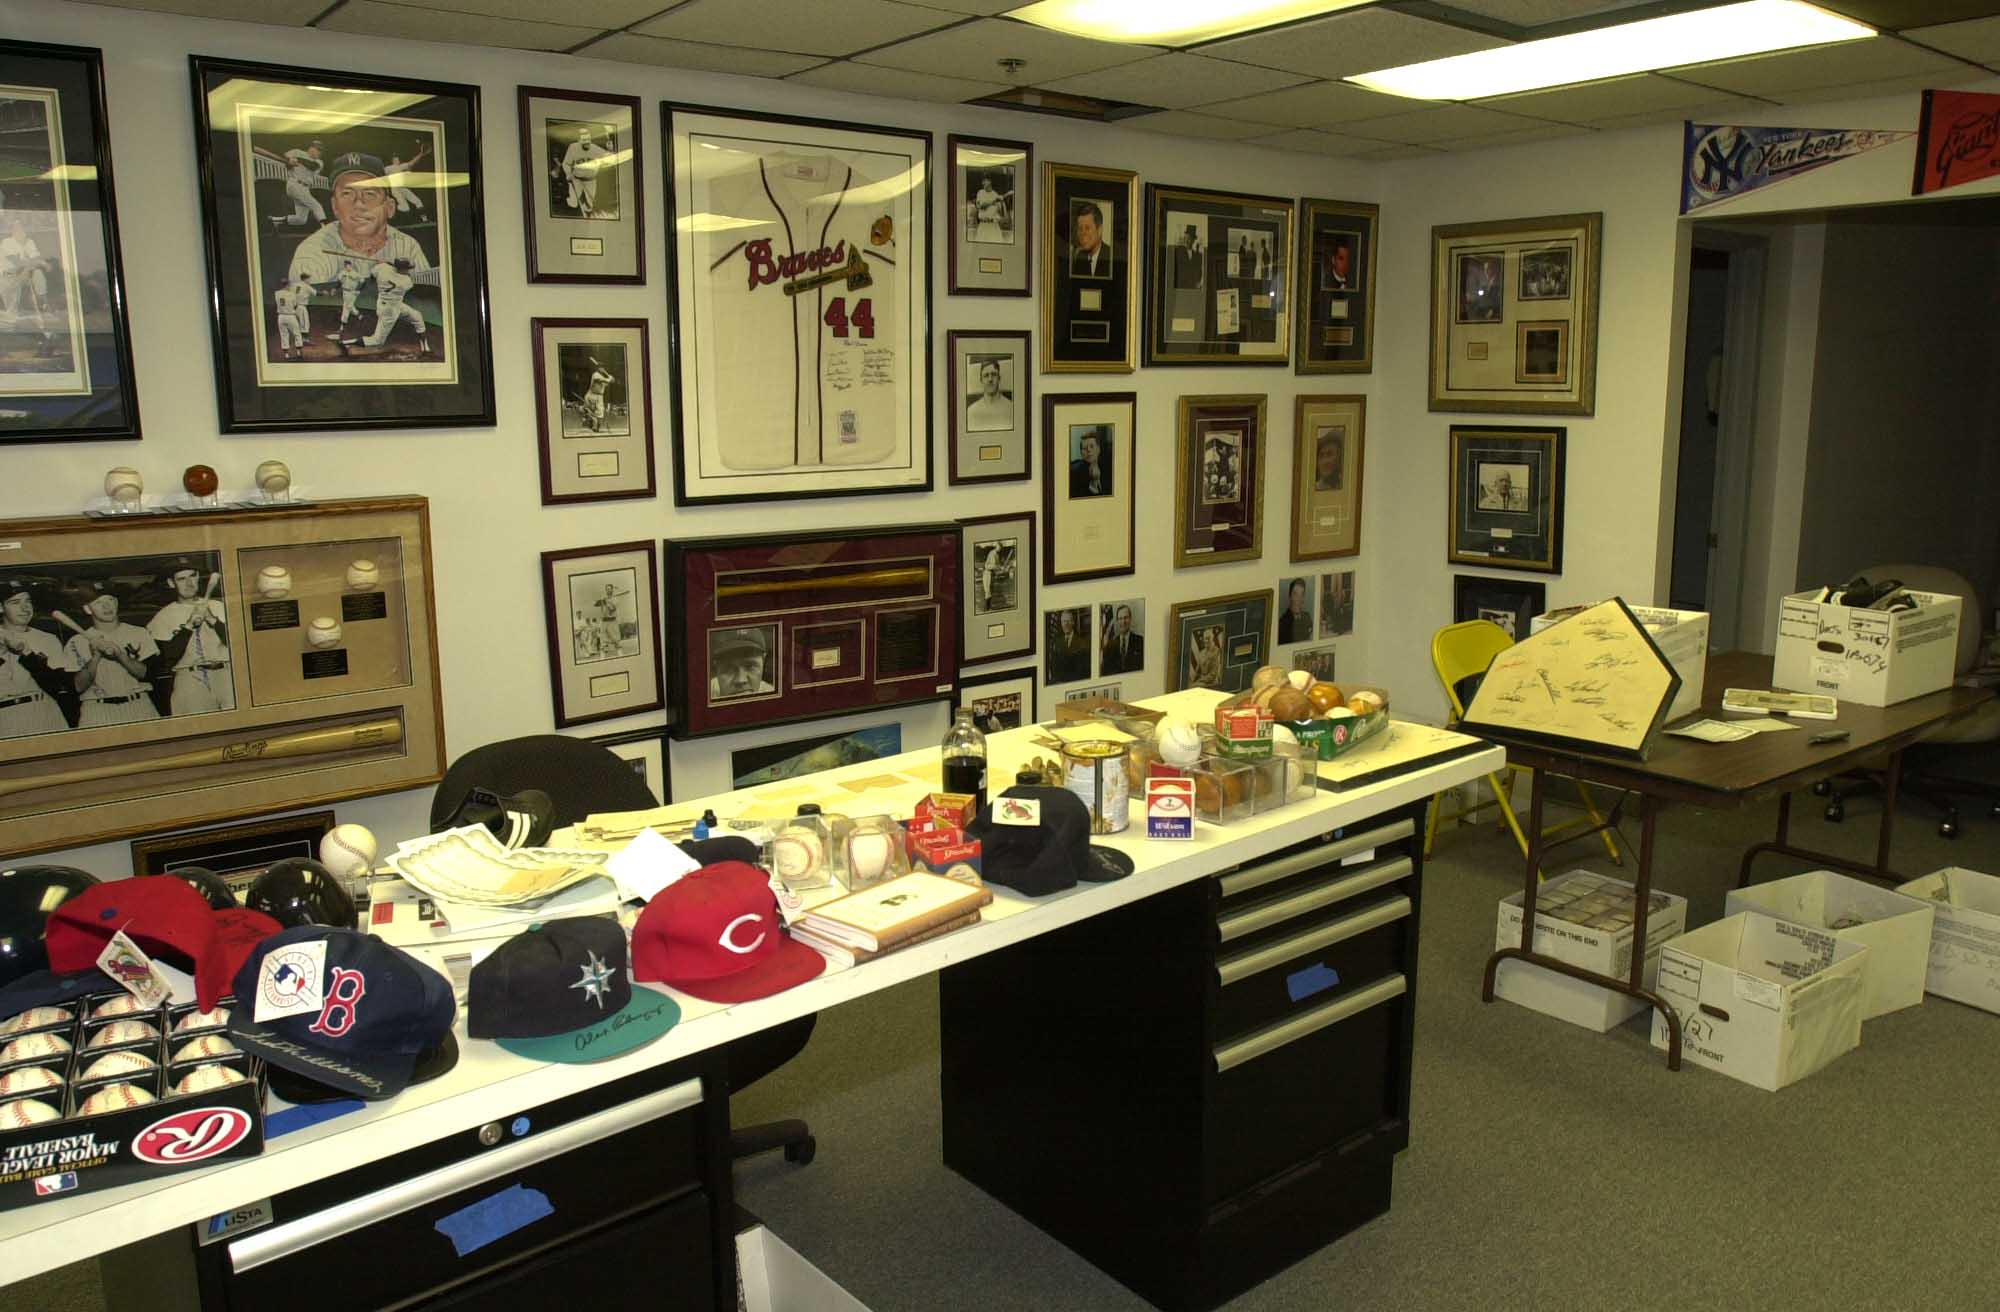 A room full of Mickey Mantle and other forgeries confiscated by the FBI.